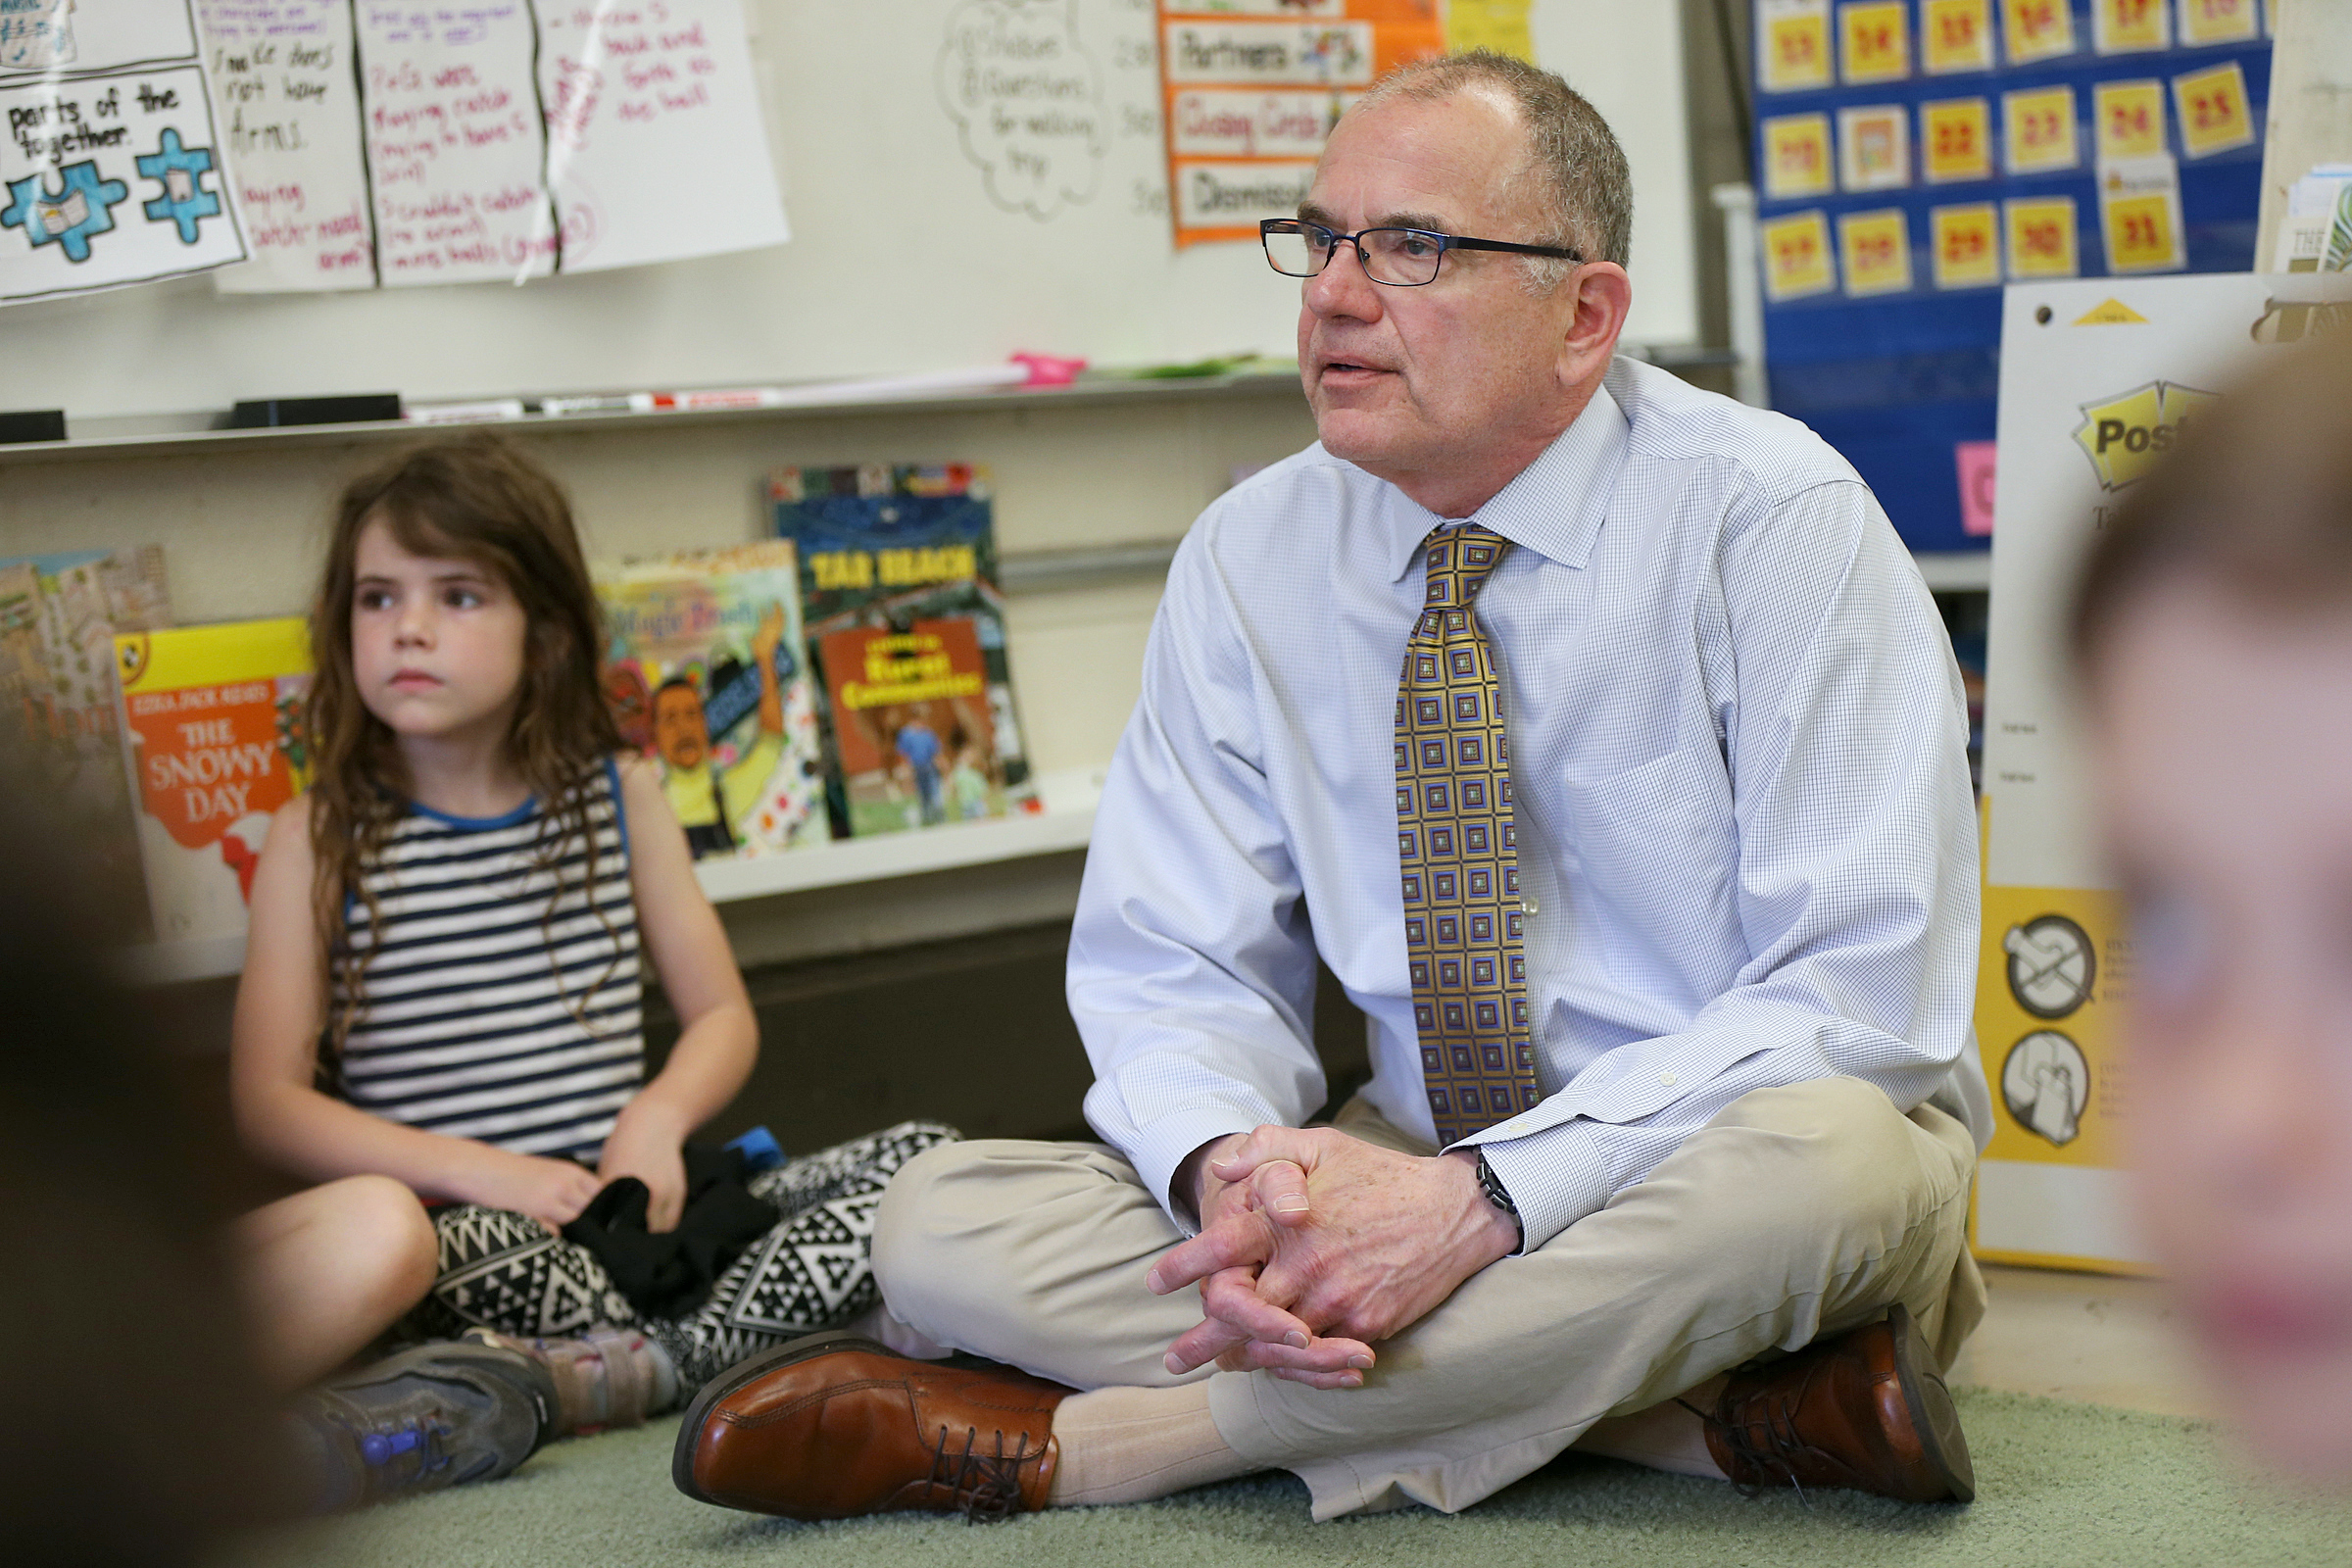 Craig Stevens, school psychologist and director of student support services, participates in a Feedback program session with first-graders at Germantown Friends School.